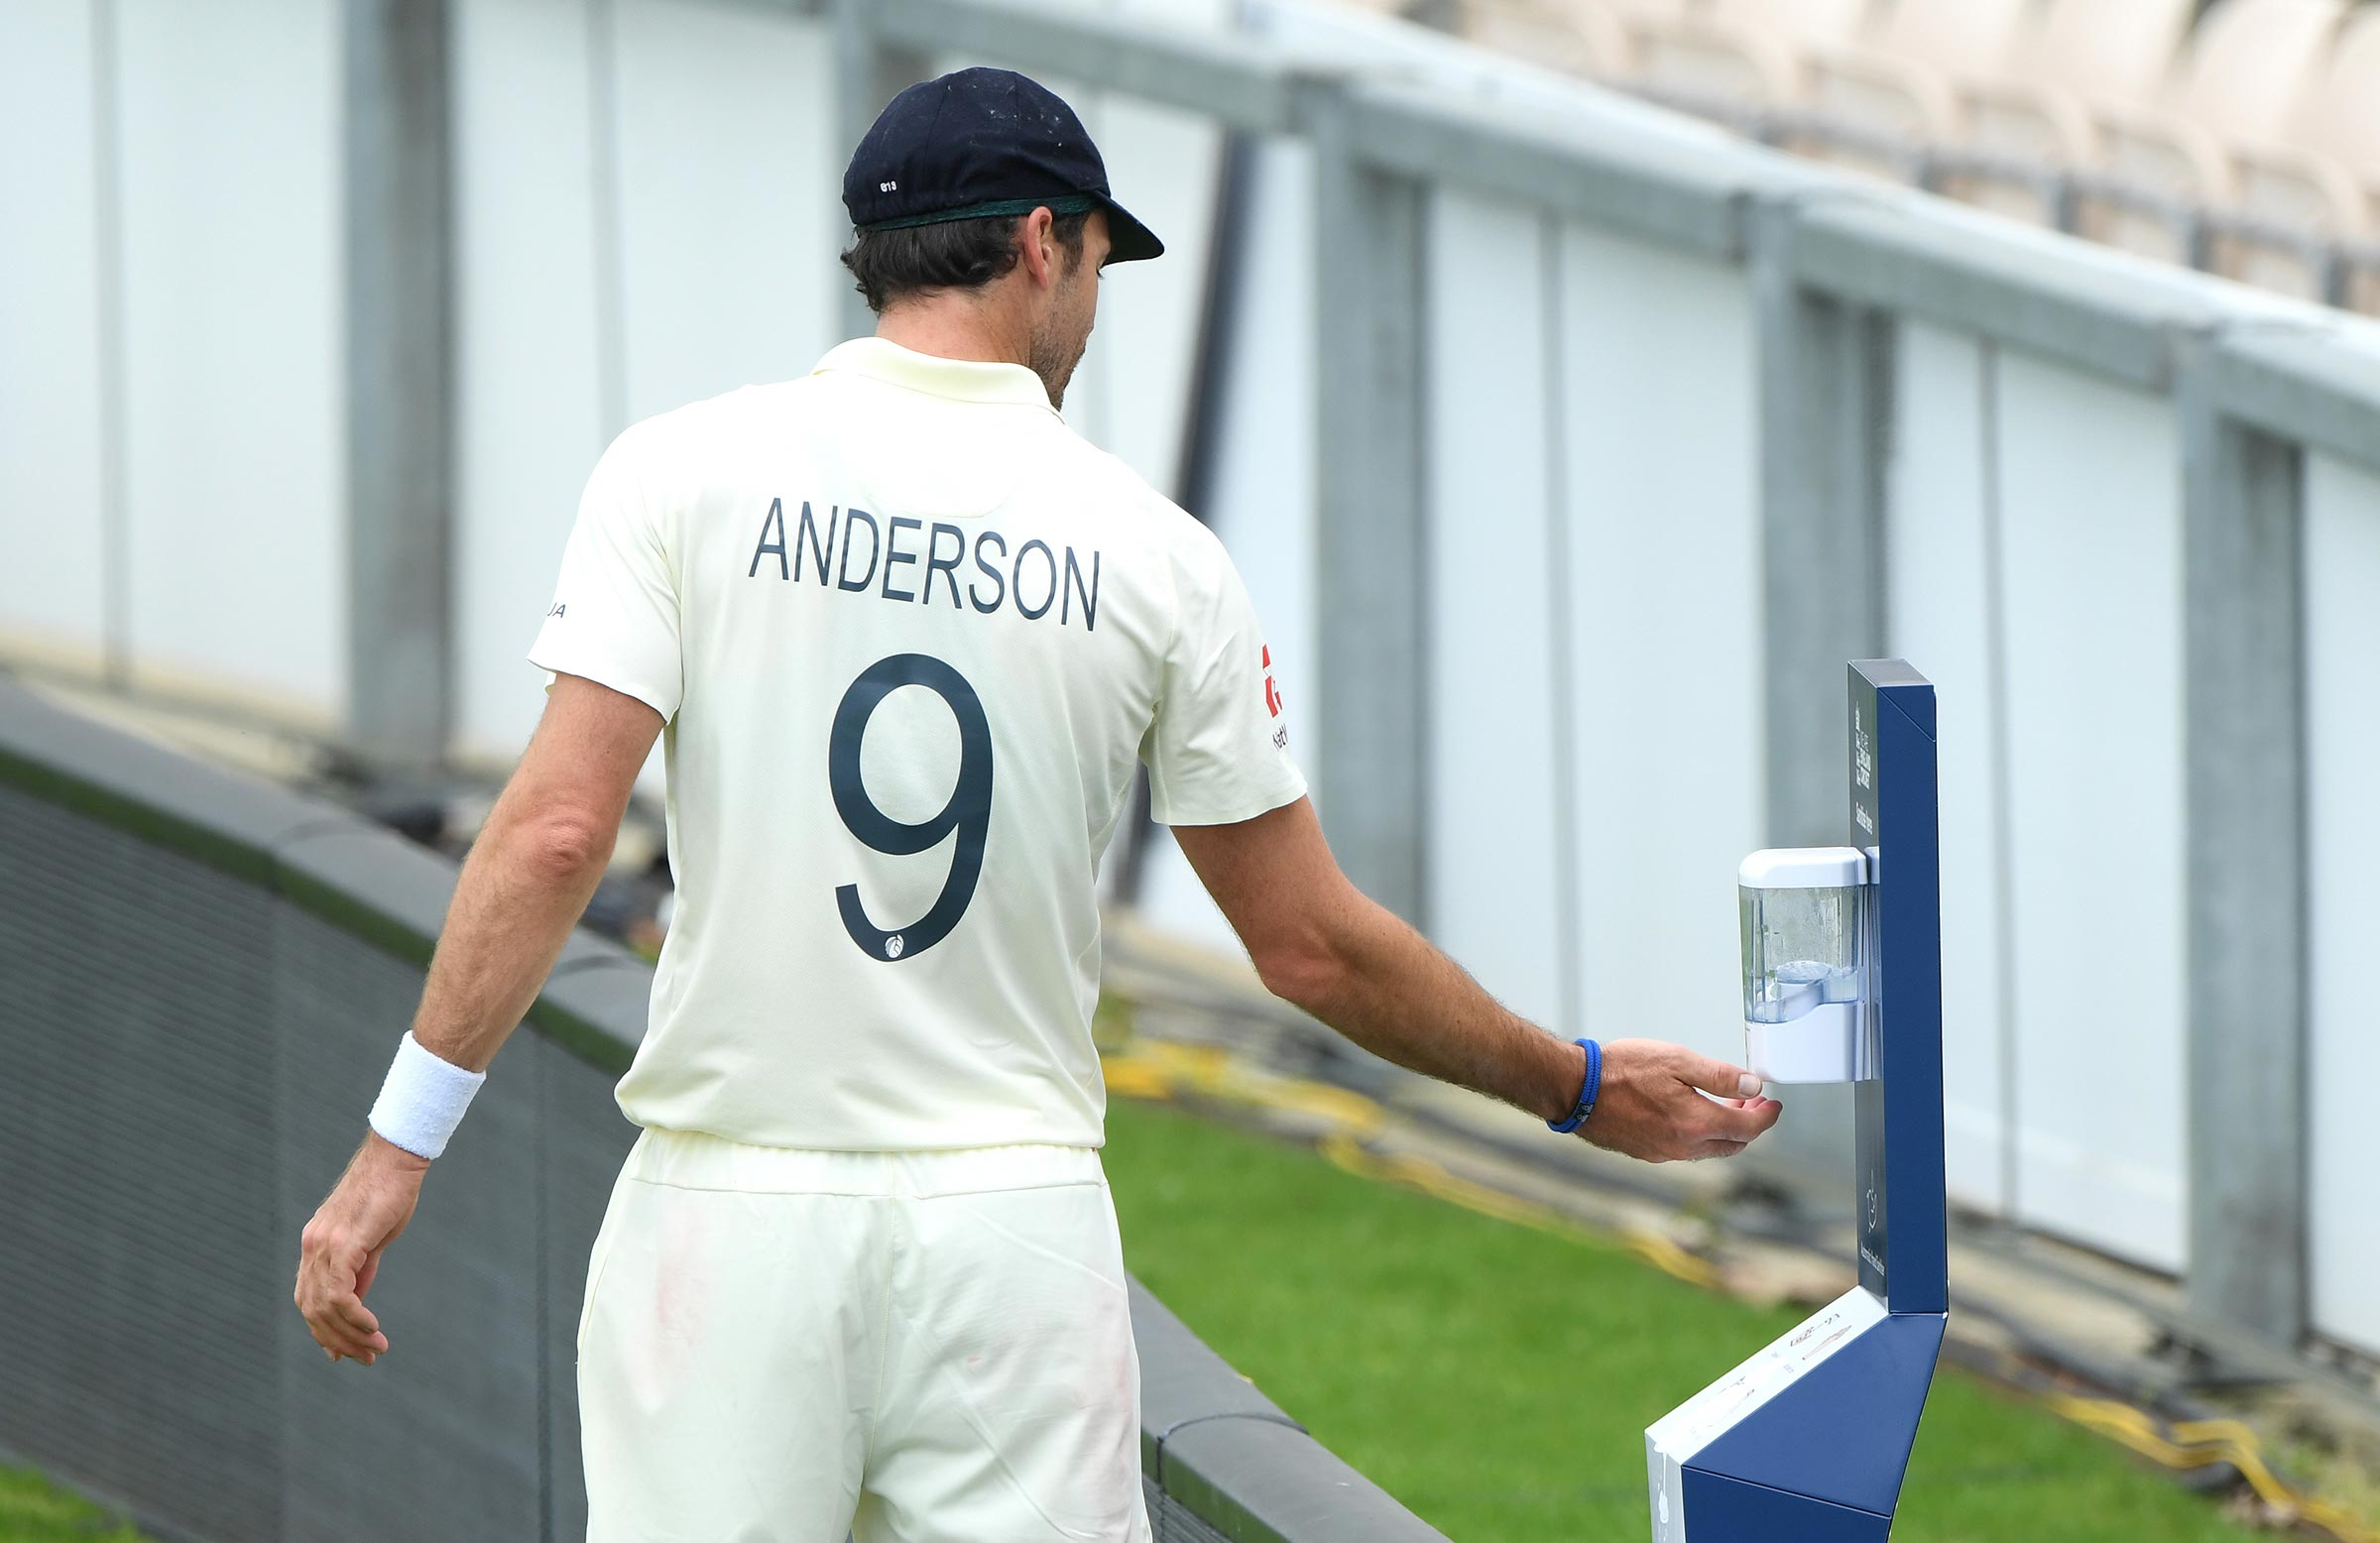 Jimmy Anderson makes use of a high-sanitising station // Getty